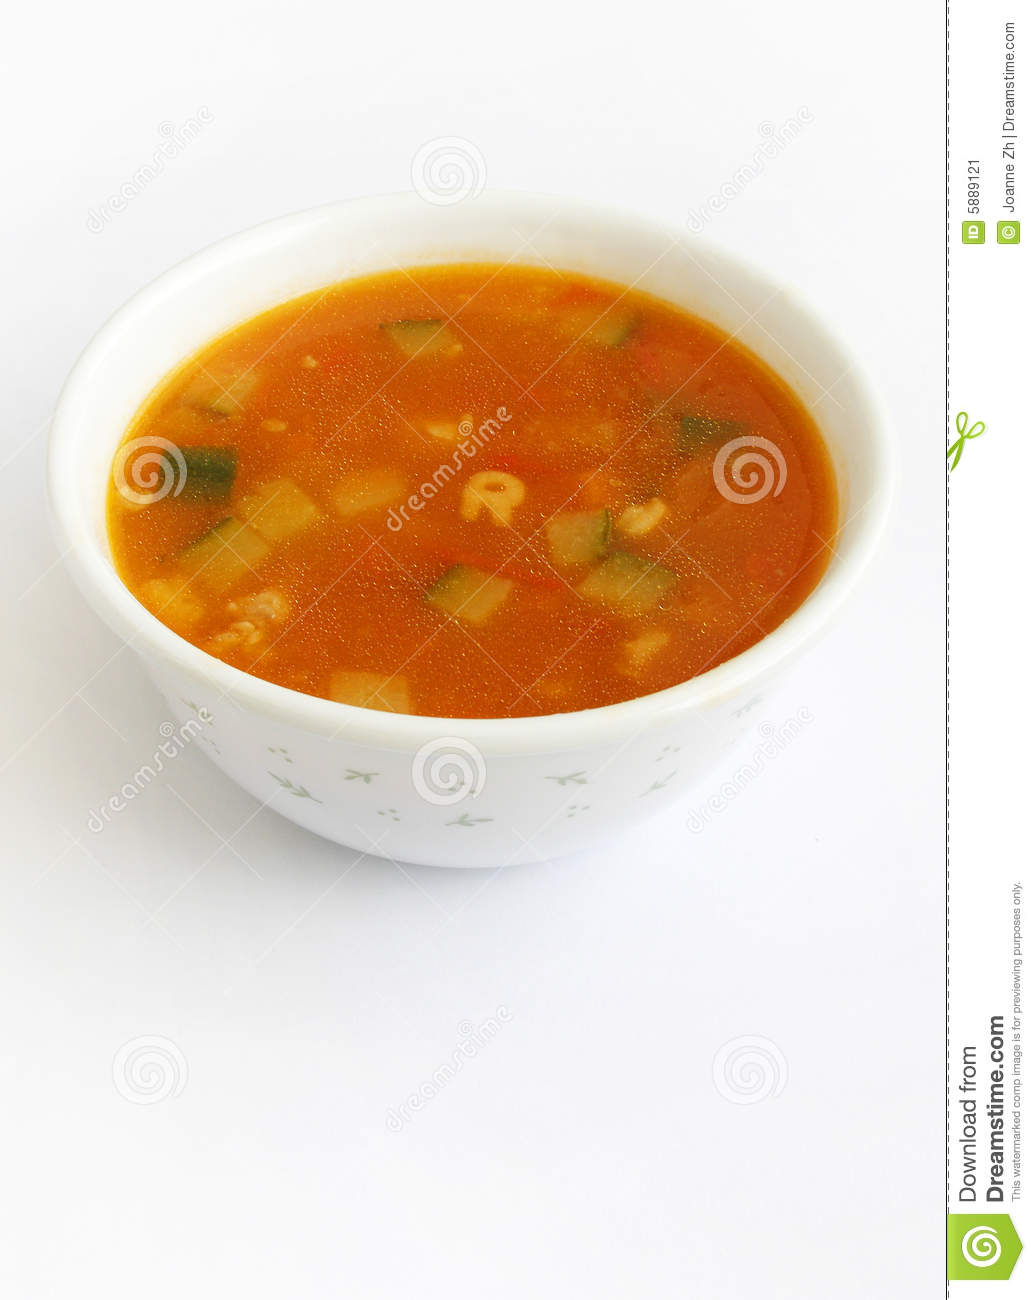 Tomato soup with vegetables